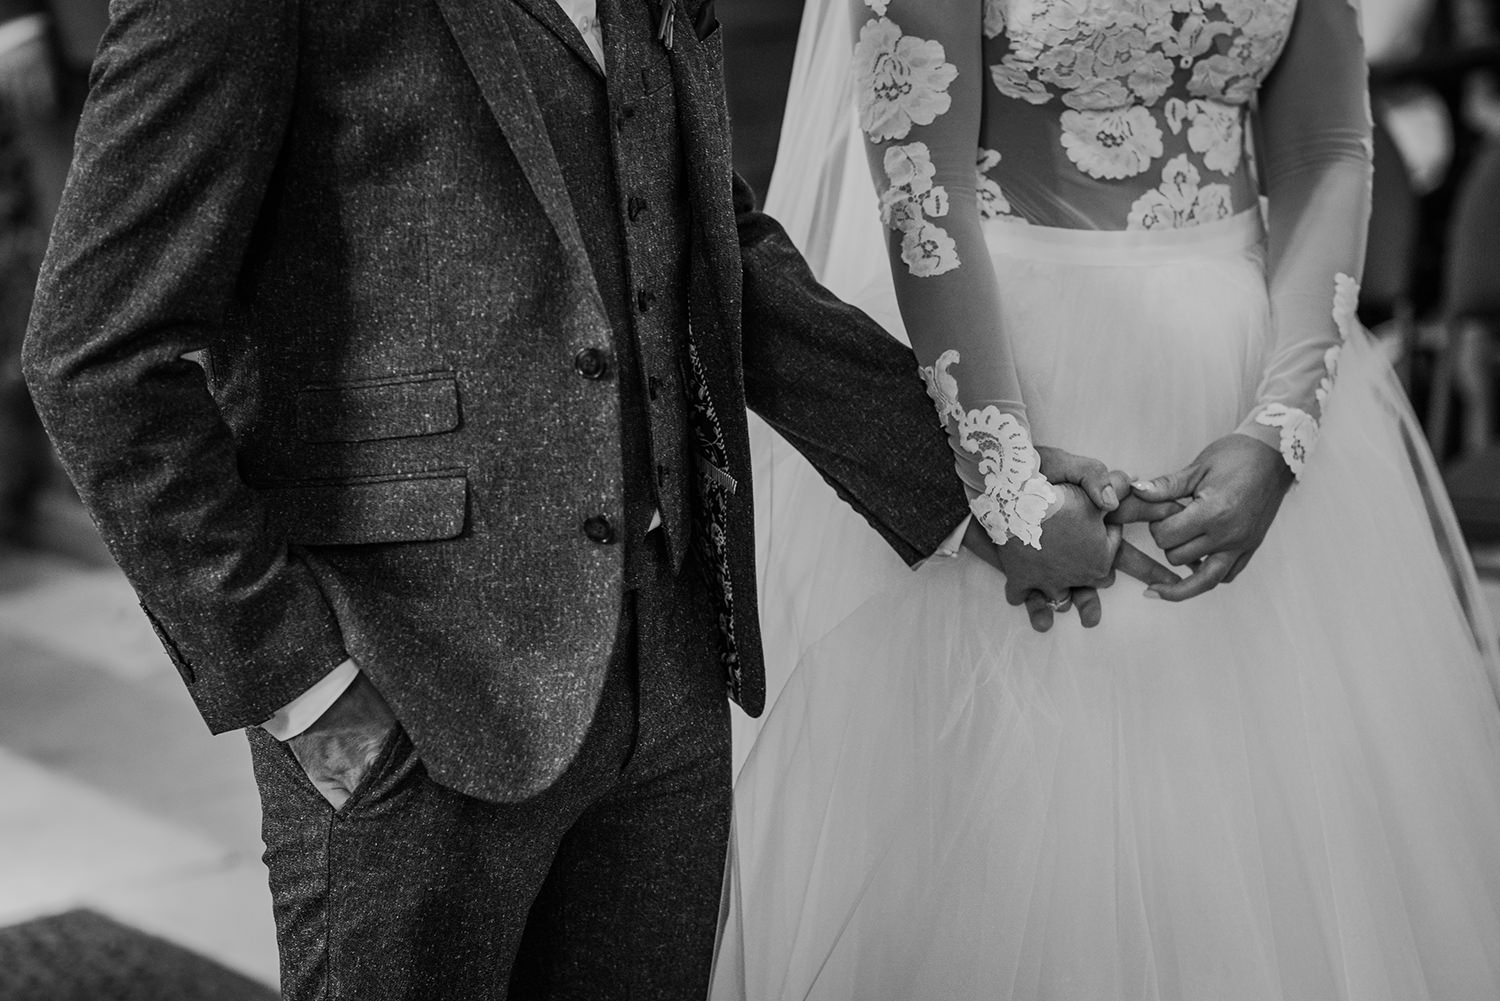 bw photo of bride and groom holding hands